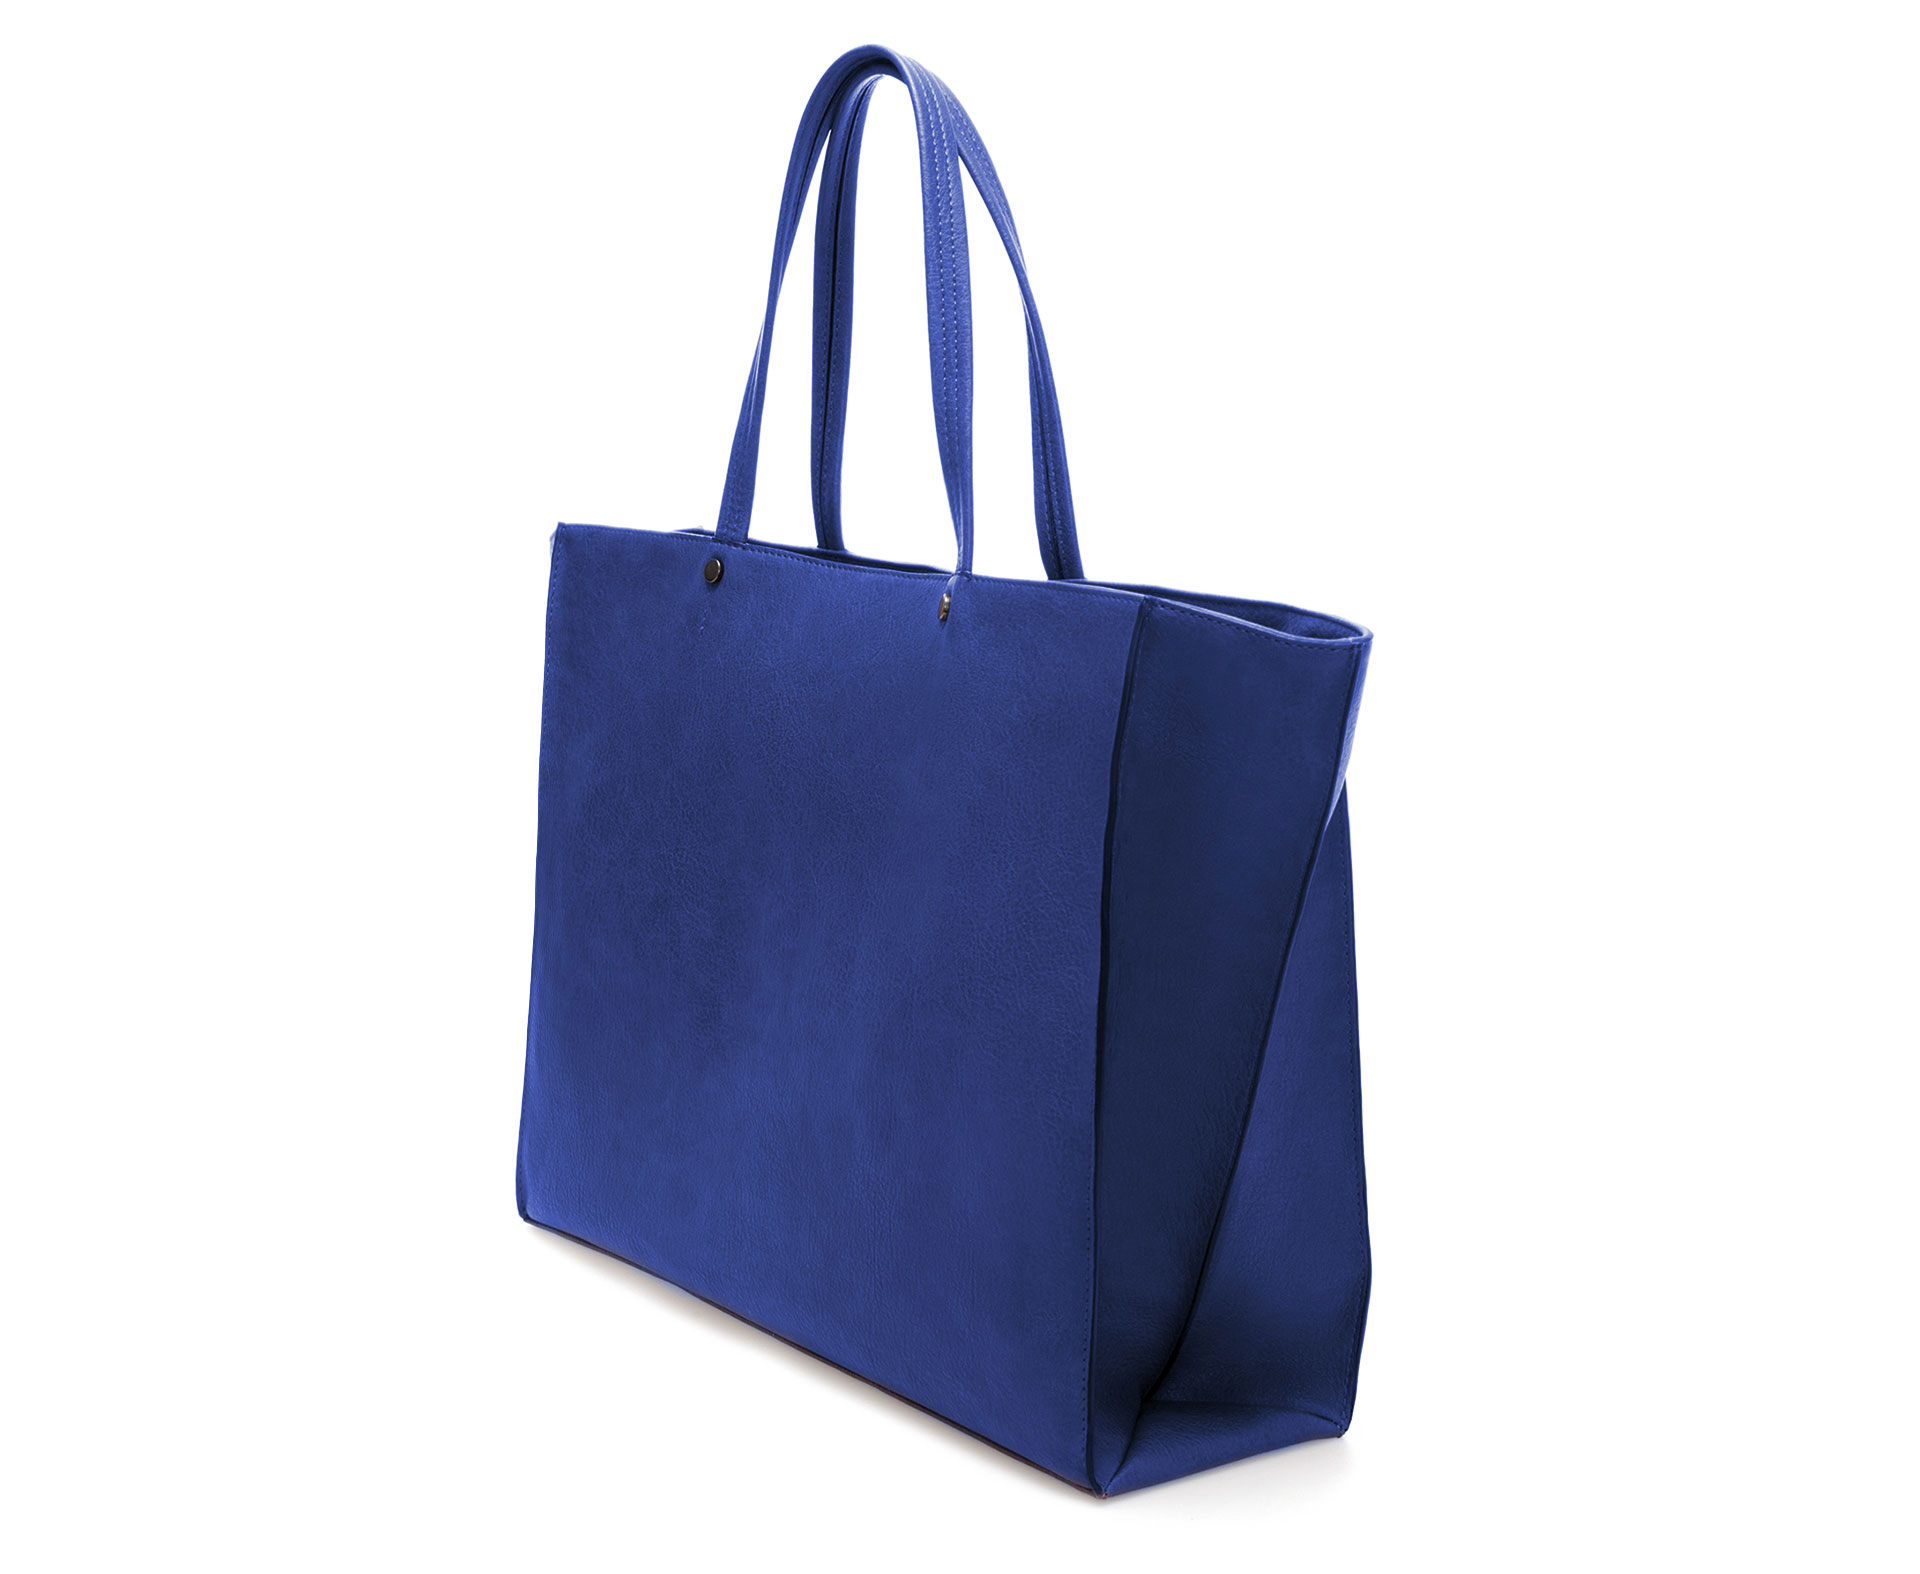 Zara Plain Shopper Bag in Blue | Lyst